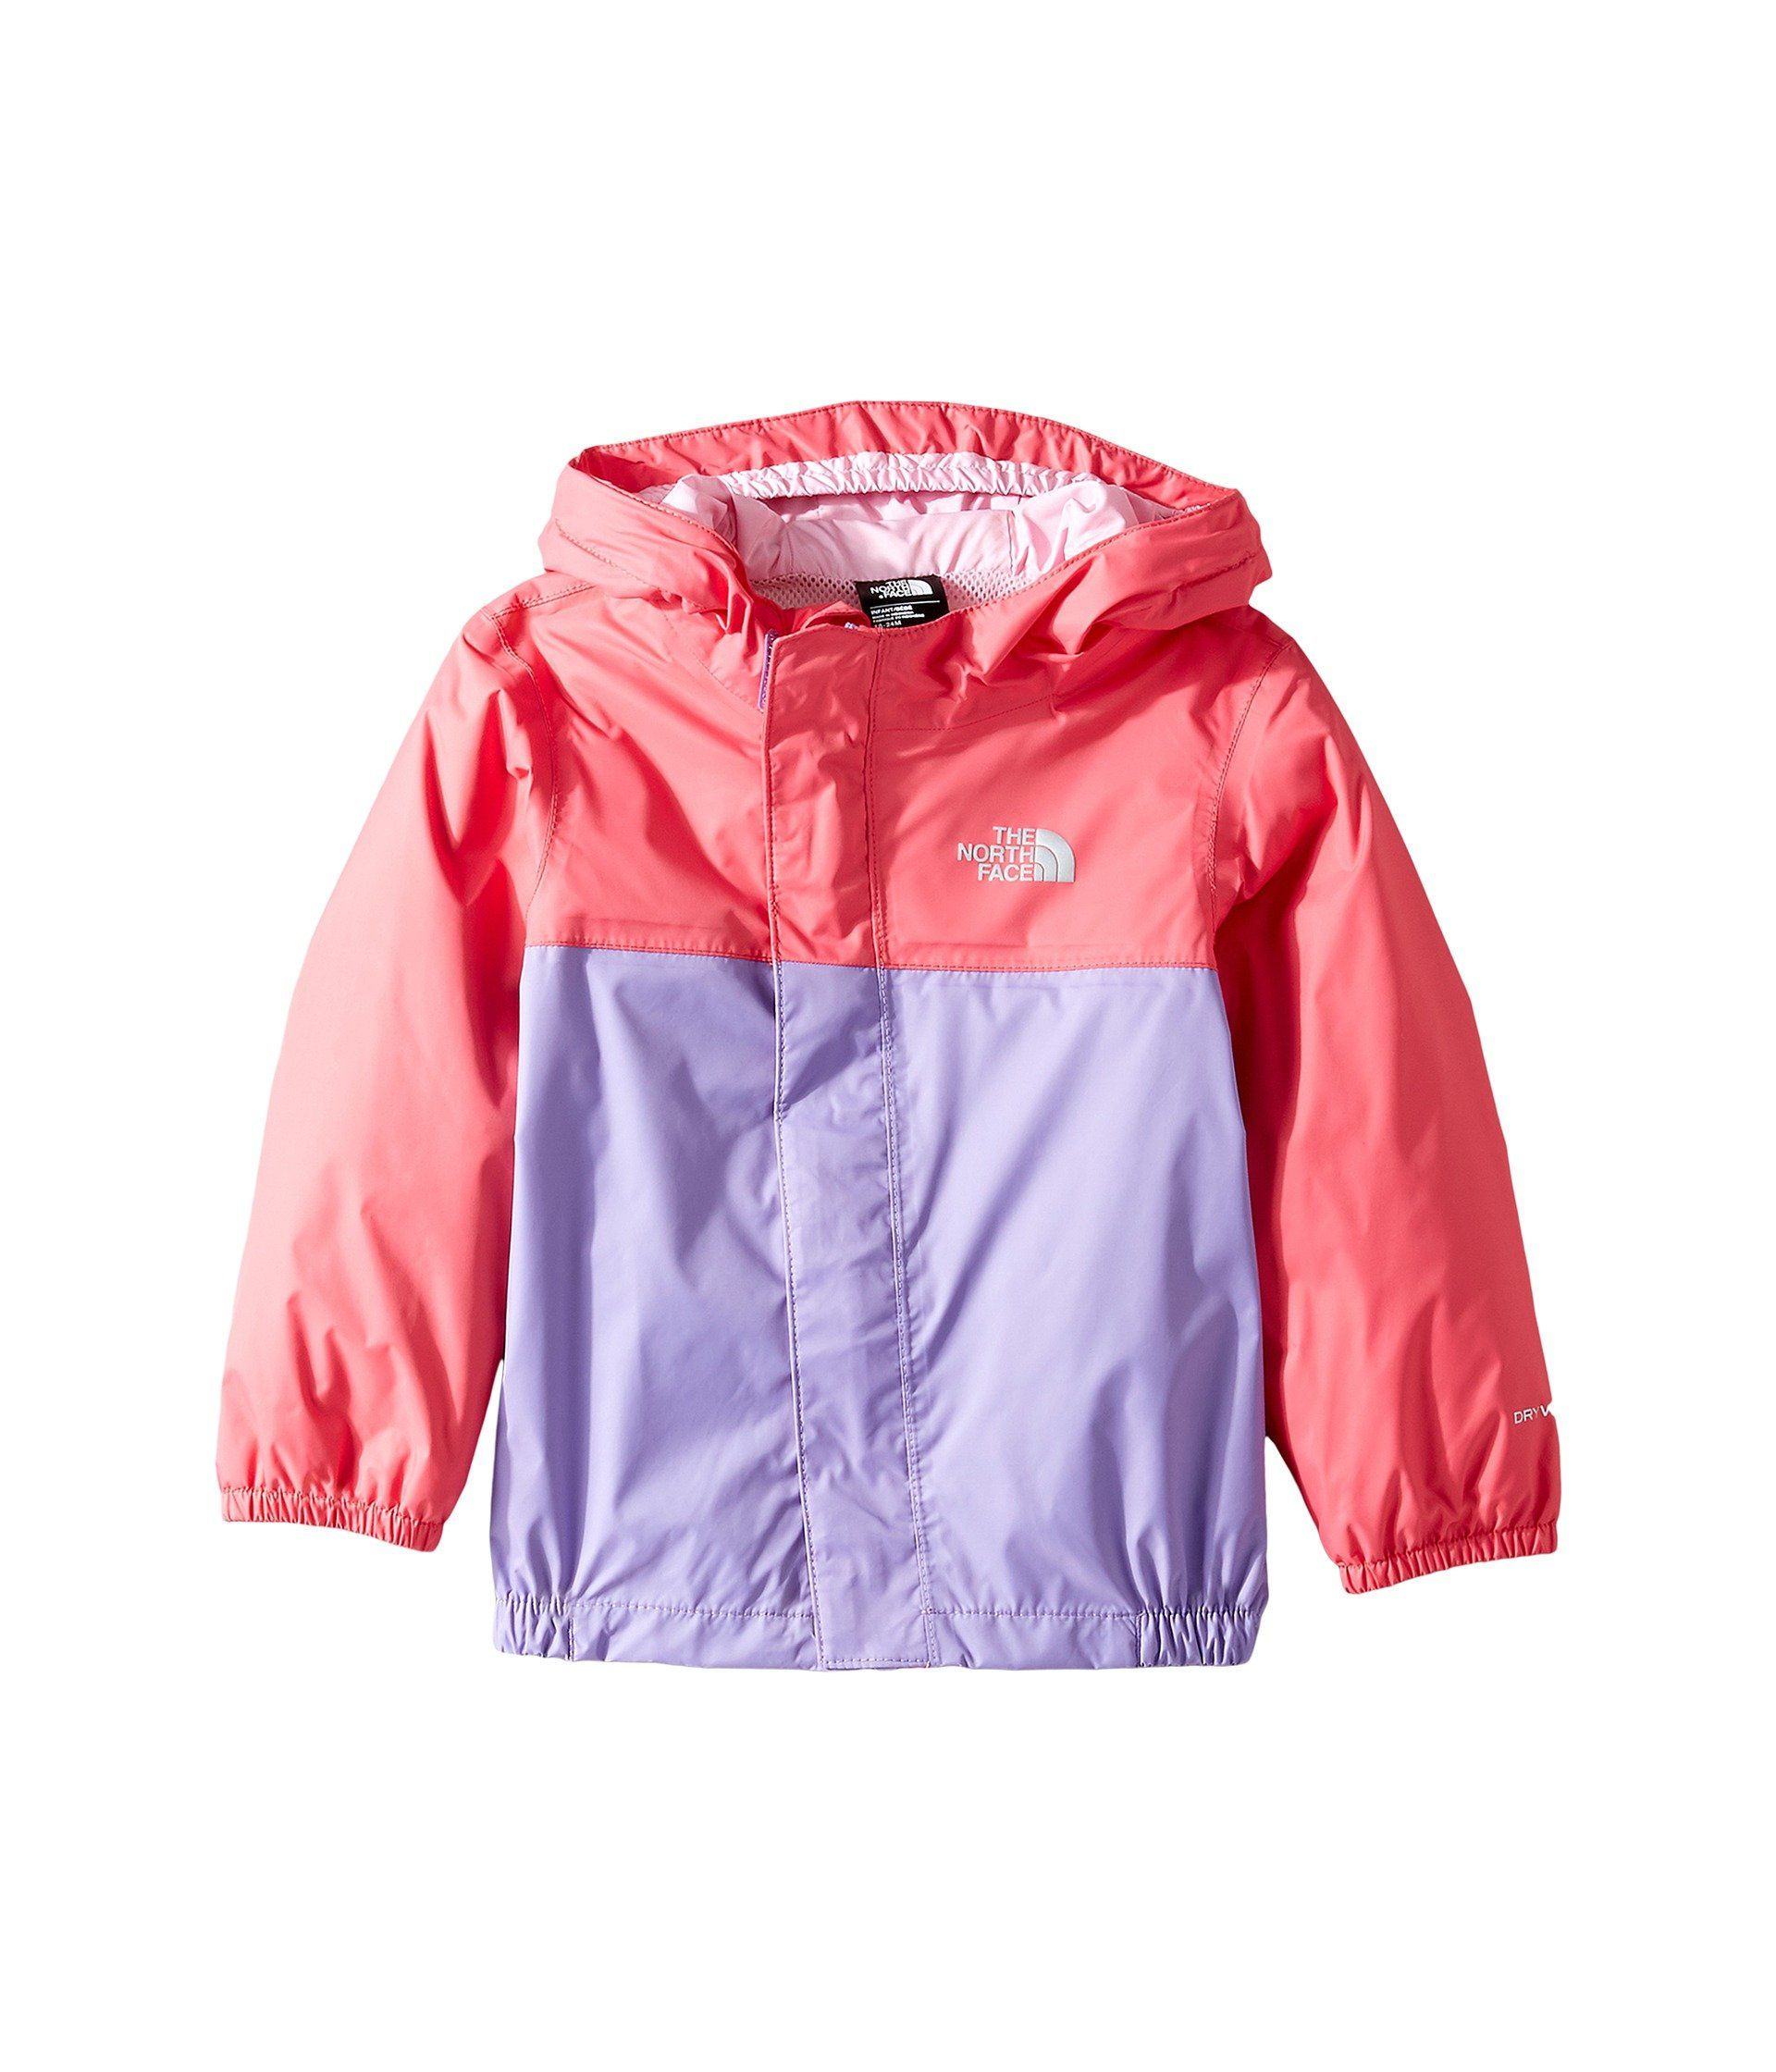 d15a1654168d The North Face Baby Girls  Tailout Rain Jacket - honey suckle pink ...